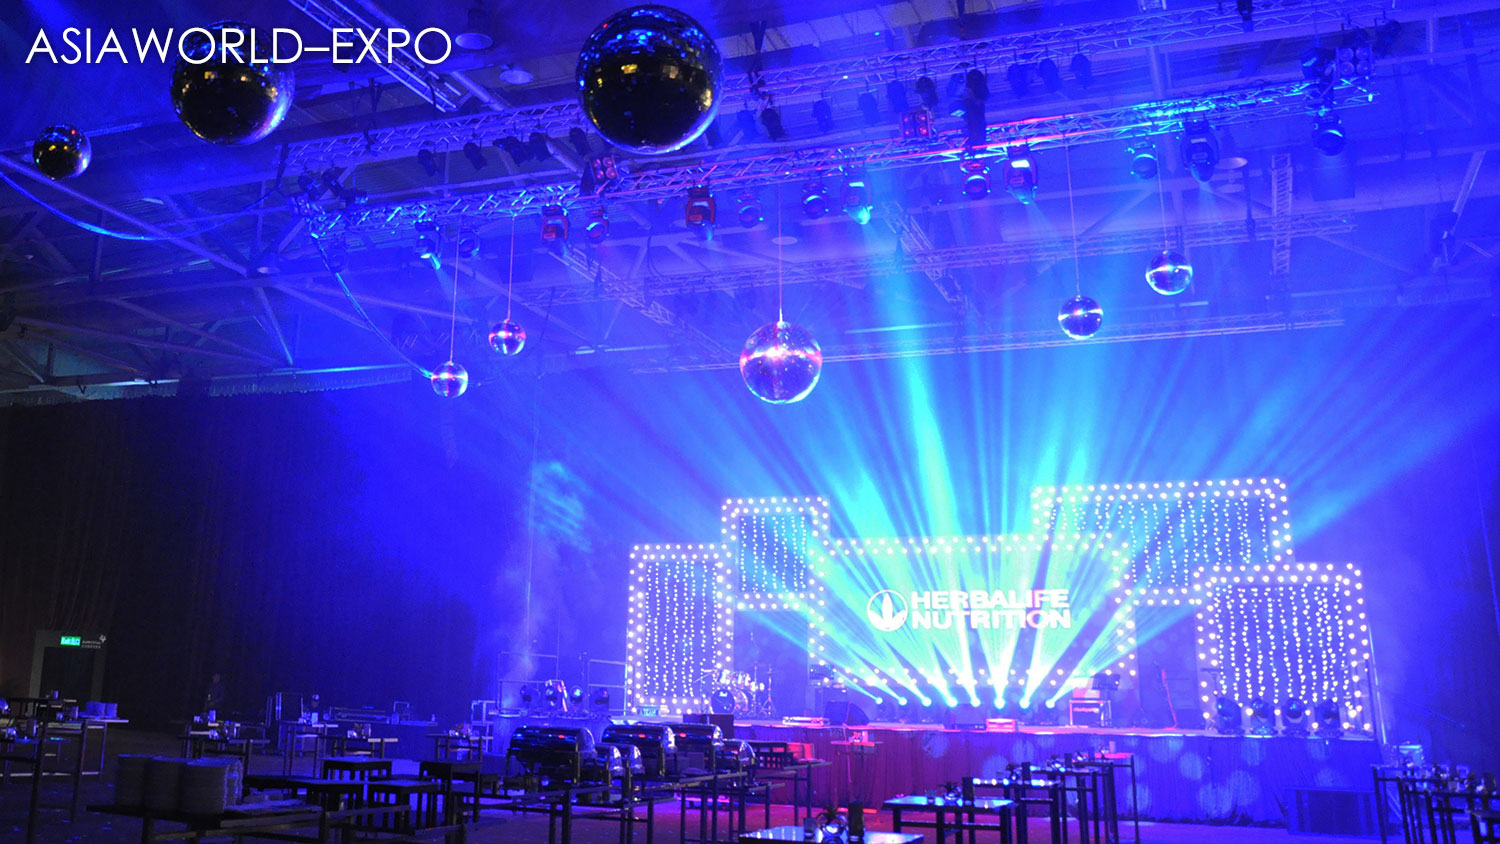 We are a lighting hire company providing event lighting rental services in Hong Kong. Our lighting equipment greatly enhances the atmosphere at any function and is used for all types of events including gala dinners, conferences, wedding banquets, private parties, product launches, and outdoor festivals.